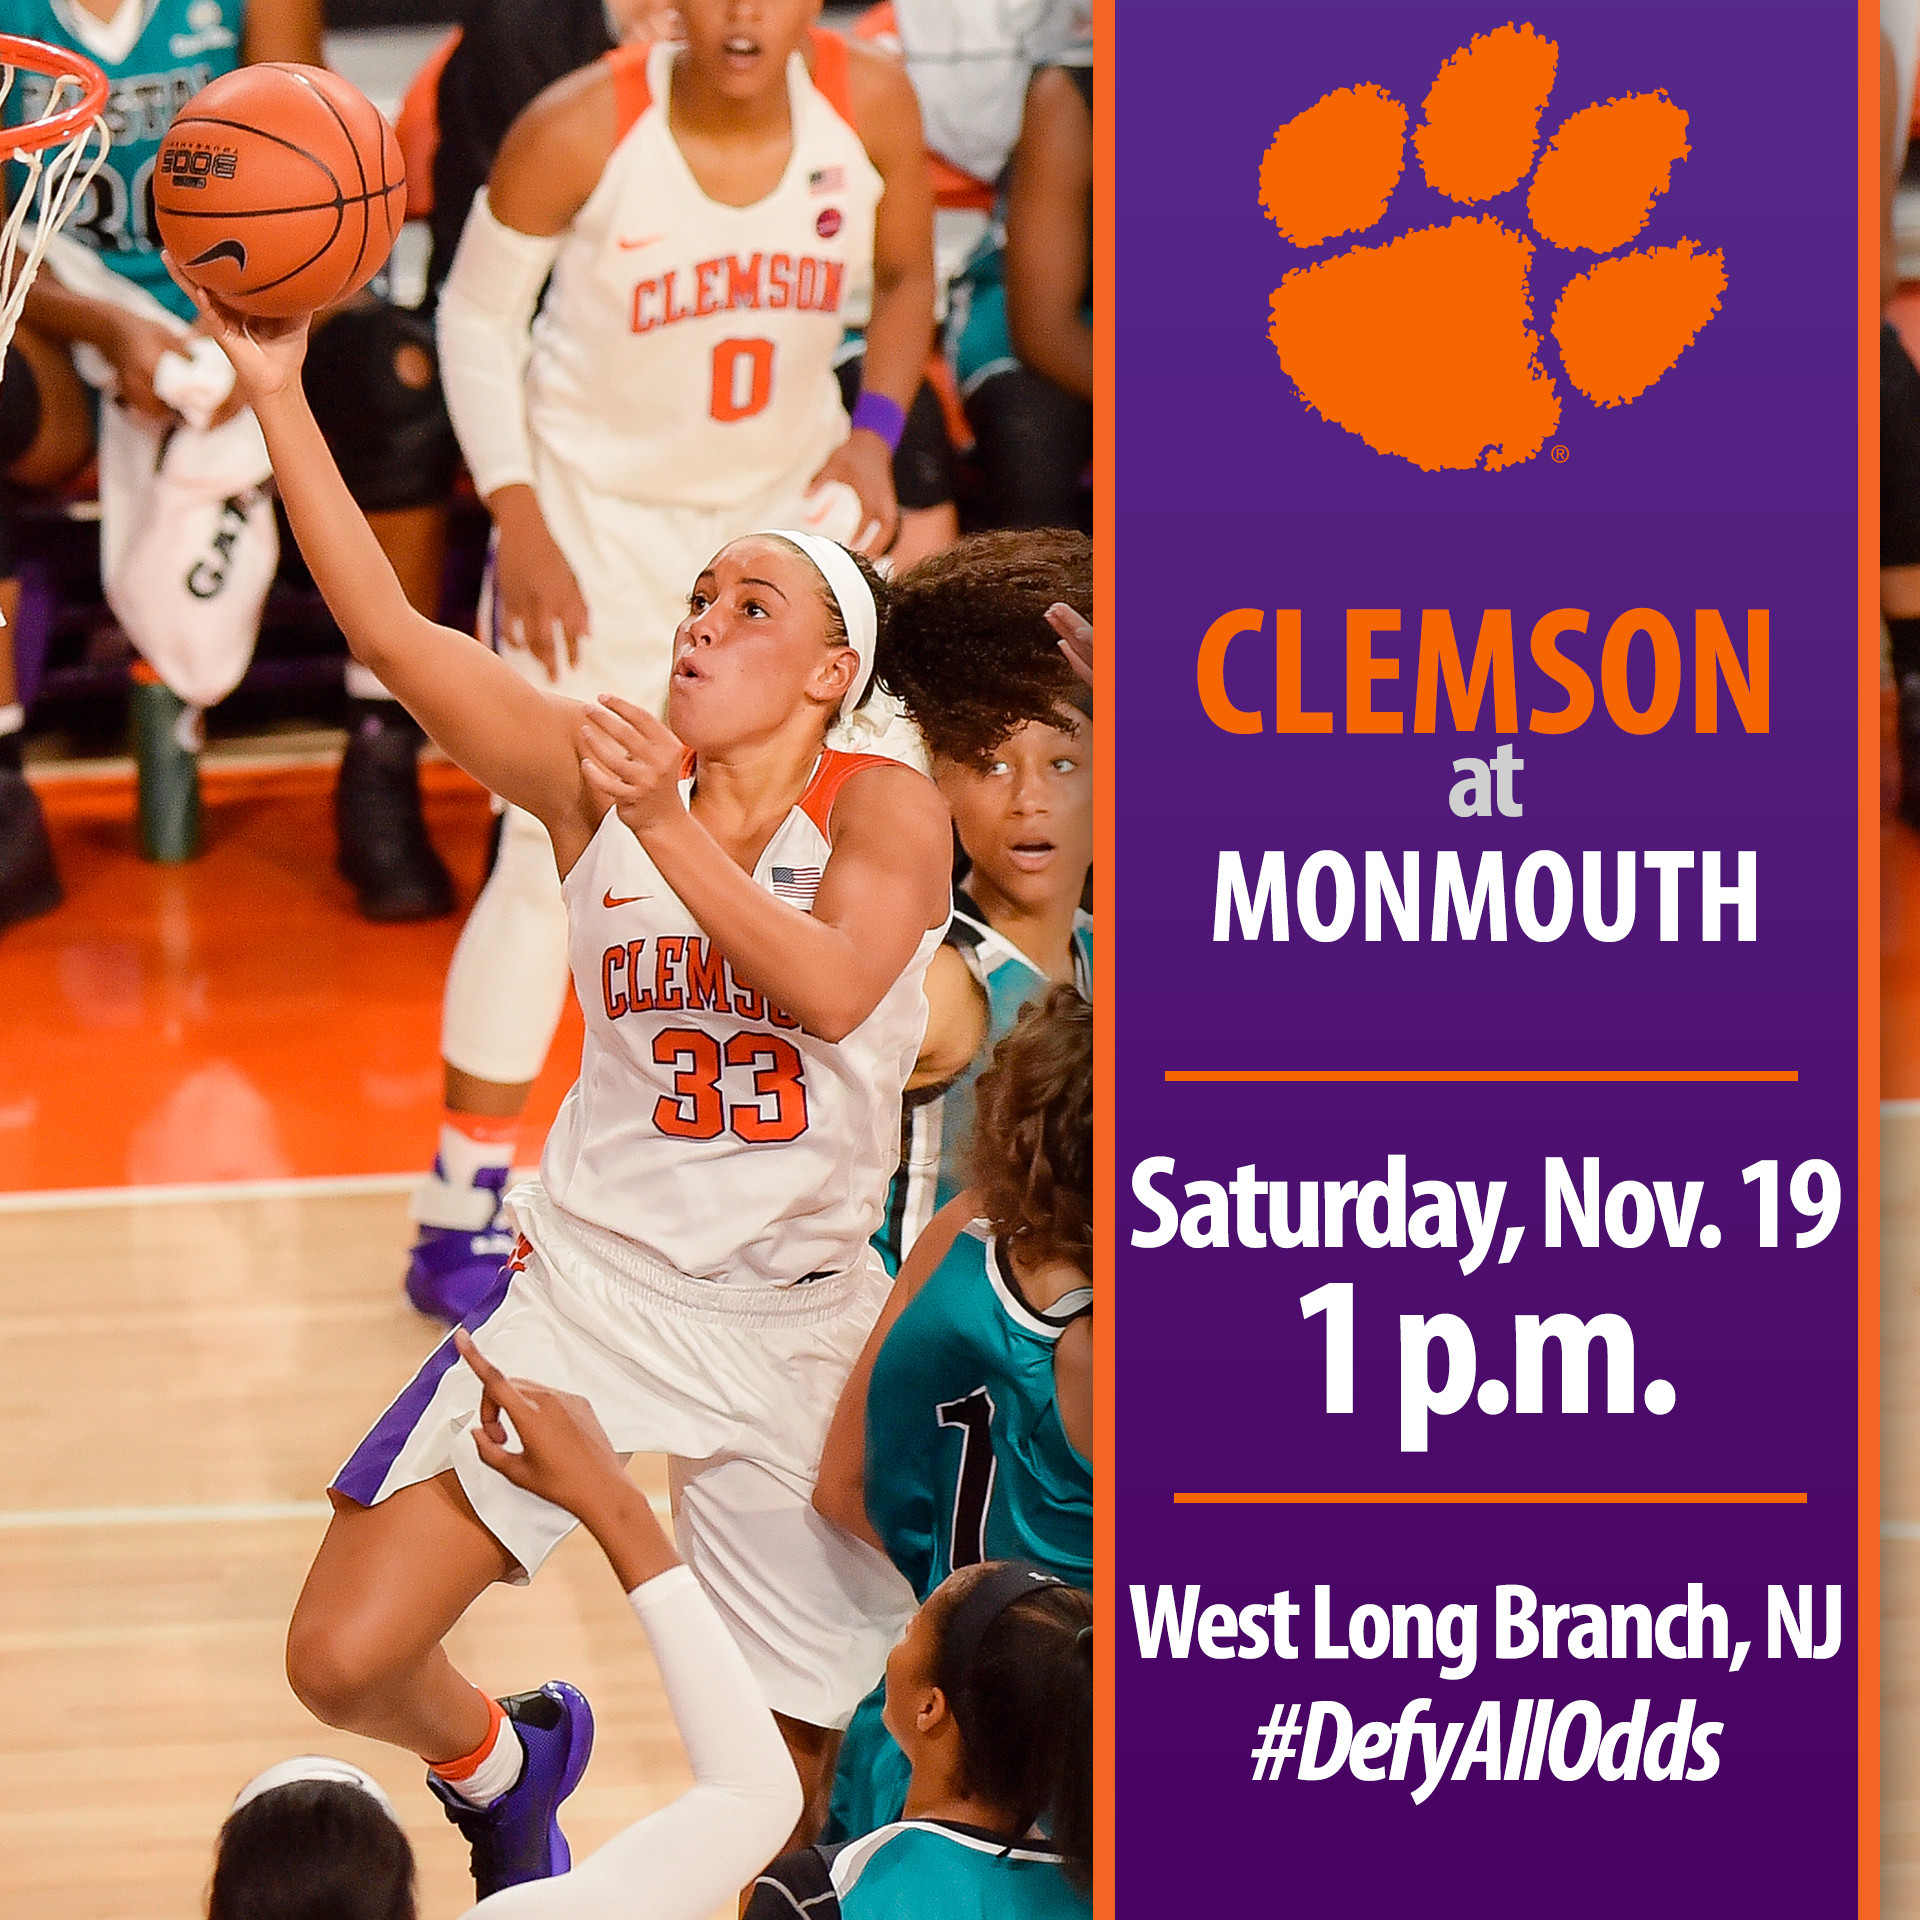 Clemson Travels to Monmouth for First Road Game